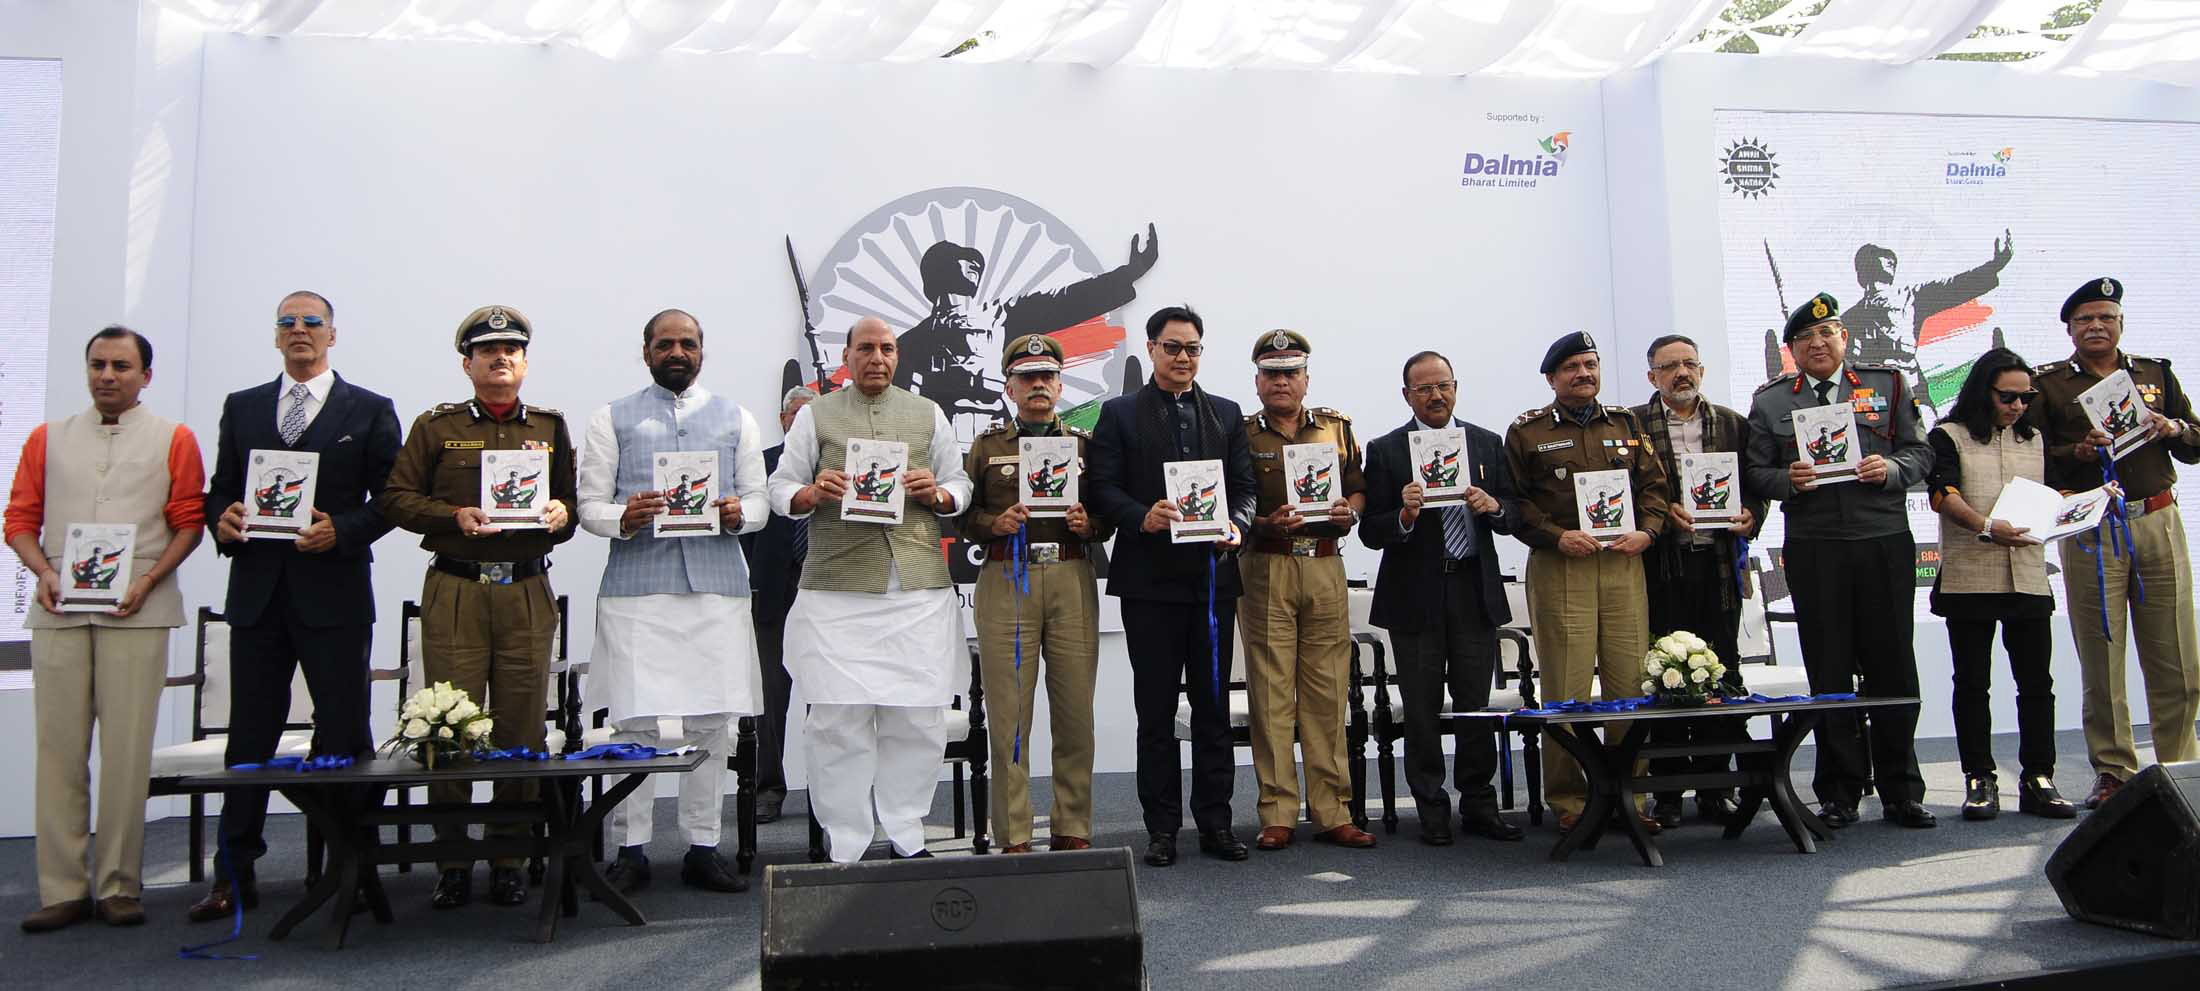 """The Union Home Minister, Shri Rajnath Singh releasing a graphic novel series depicting the martyrs' sacrifices, during a function to raise funds for the """"Bharat ke Veer"""" fund, in New Delhi on January 20, 2018. The Ministers of State for Home Affairs, Shri Hansraj Gangaram Ahir and Shri Kiren Rijiju, the National Security Advisor, Shri Ajit Doval, the Home Secretary, Shri Rajiv Gauba and other dignitaries are also seen."""